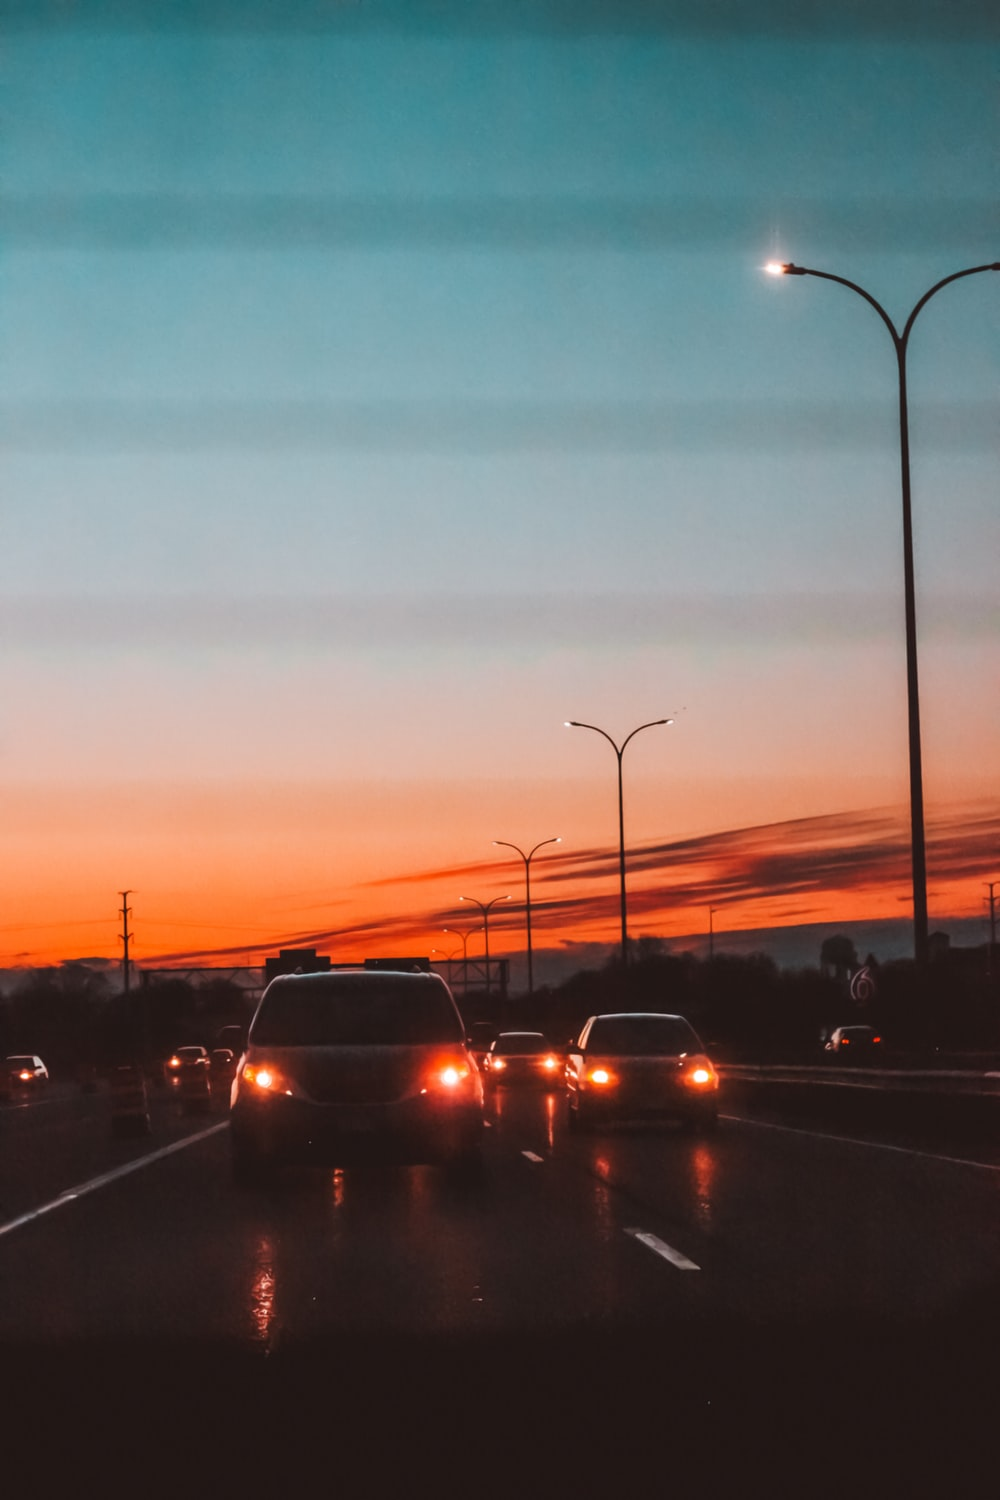 vehicles crossing on road during sunset